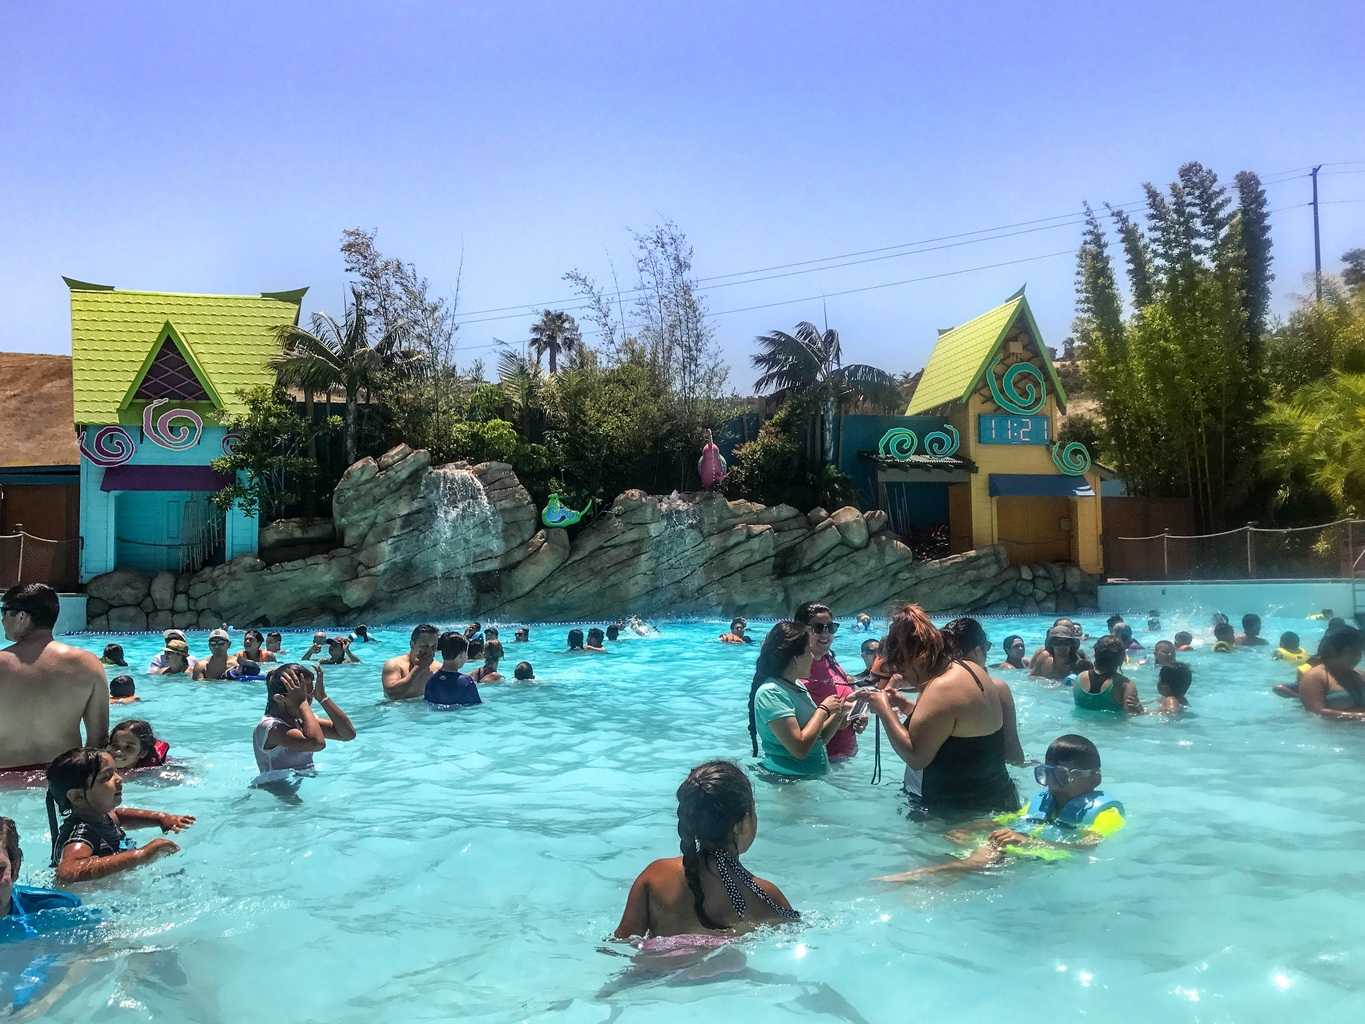 Are you looking for a fun place to cool off and beat the heat in Southern California? Check out Aquatica San Diego which has over a dozen water slides that appeal to all different ages and thrill-seekers. They even have live flamingo and sea turtle encounters!